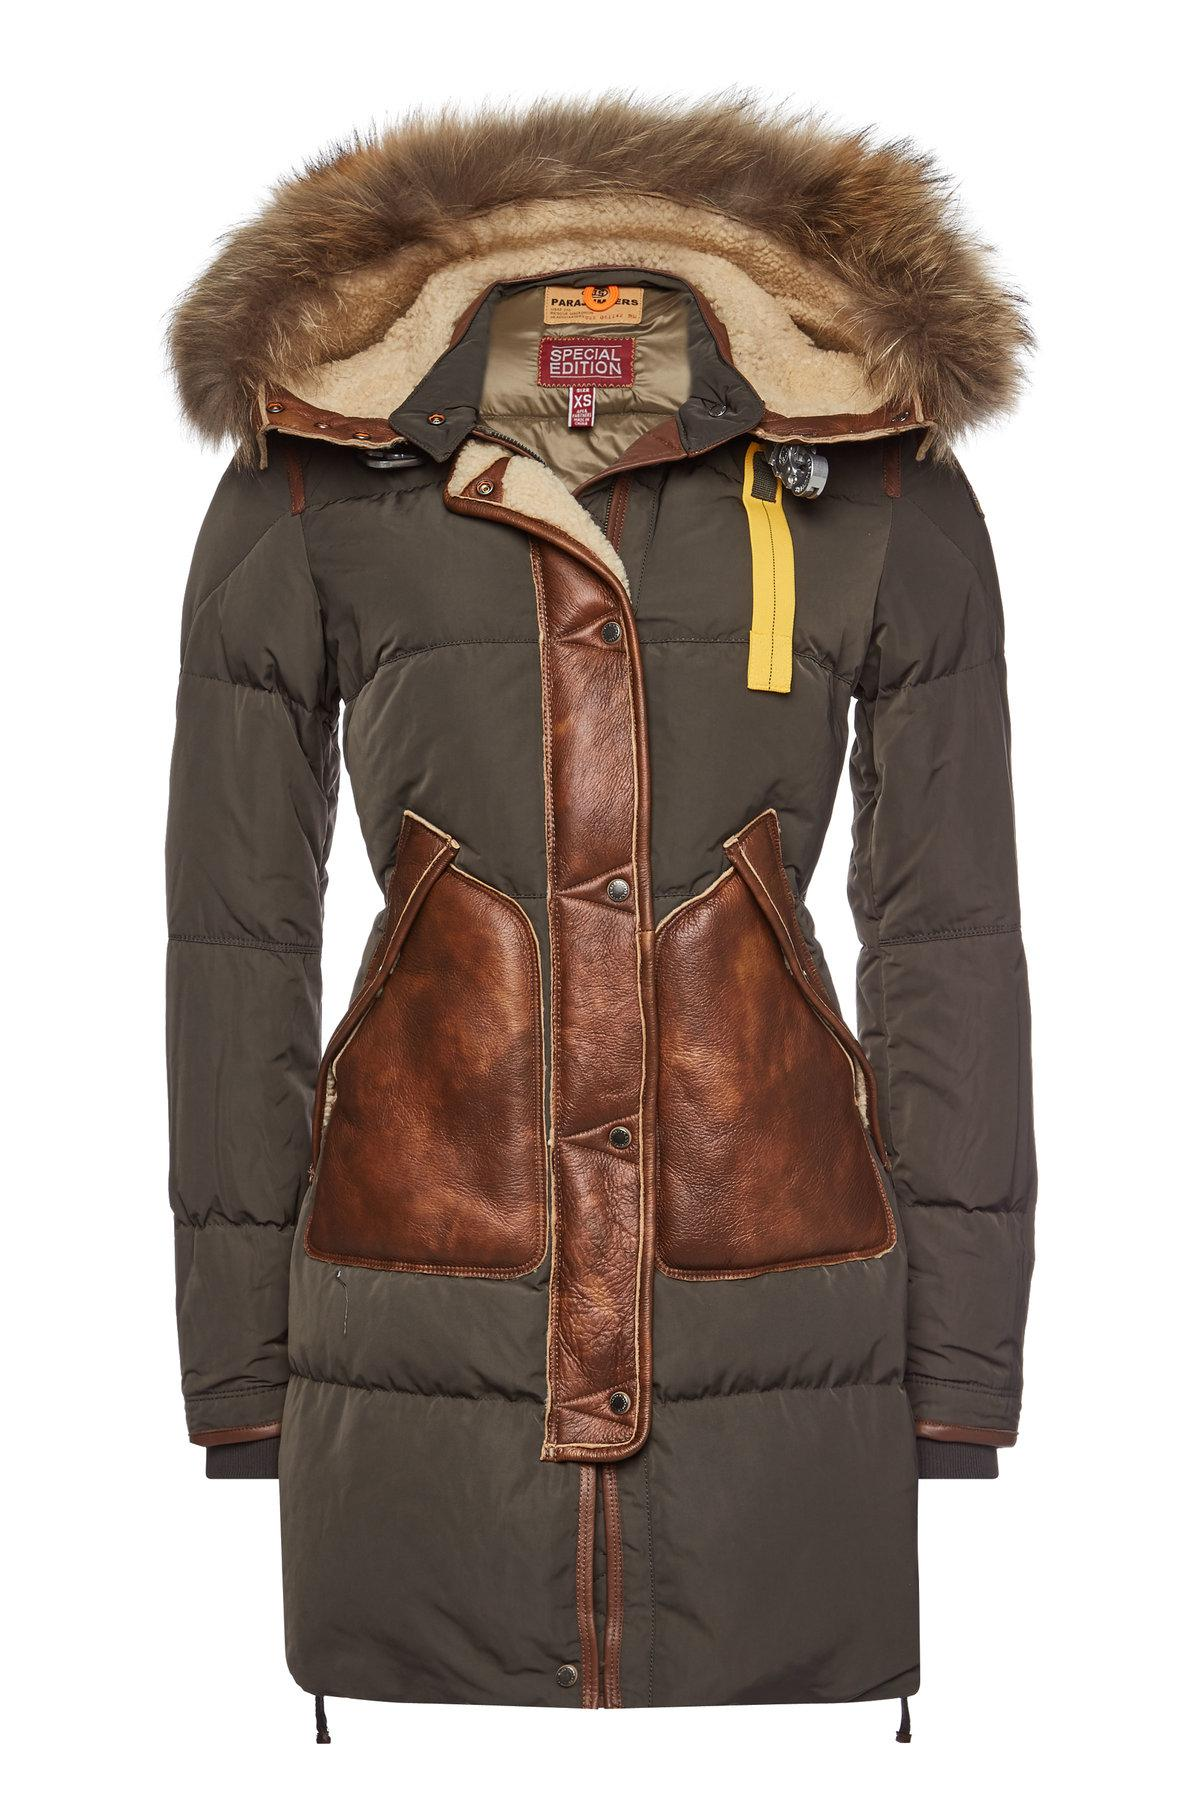 parajumpers crystal down coat